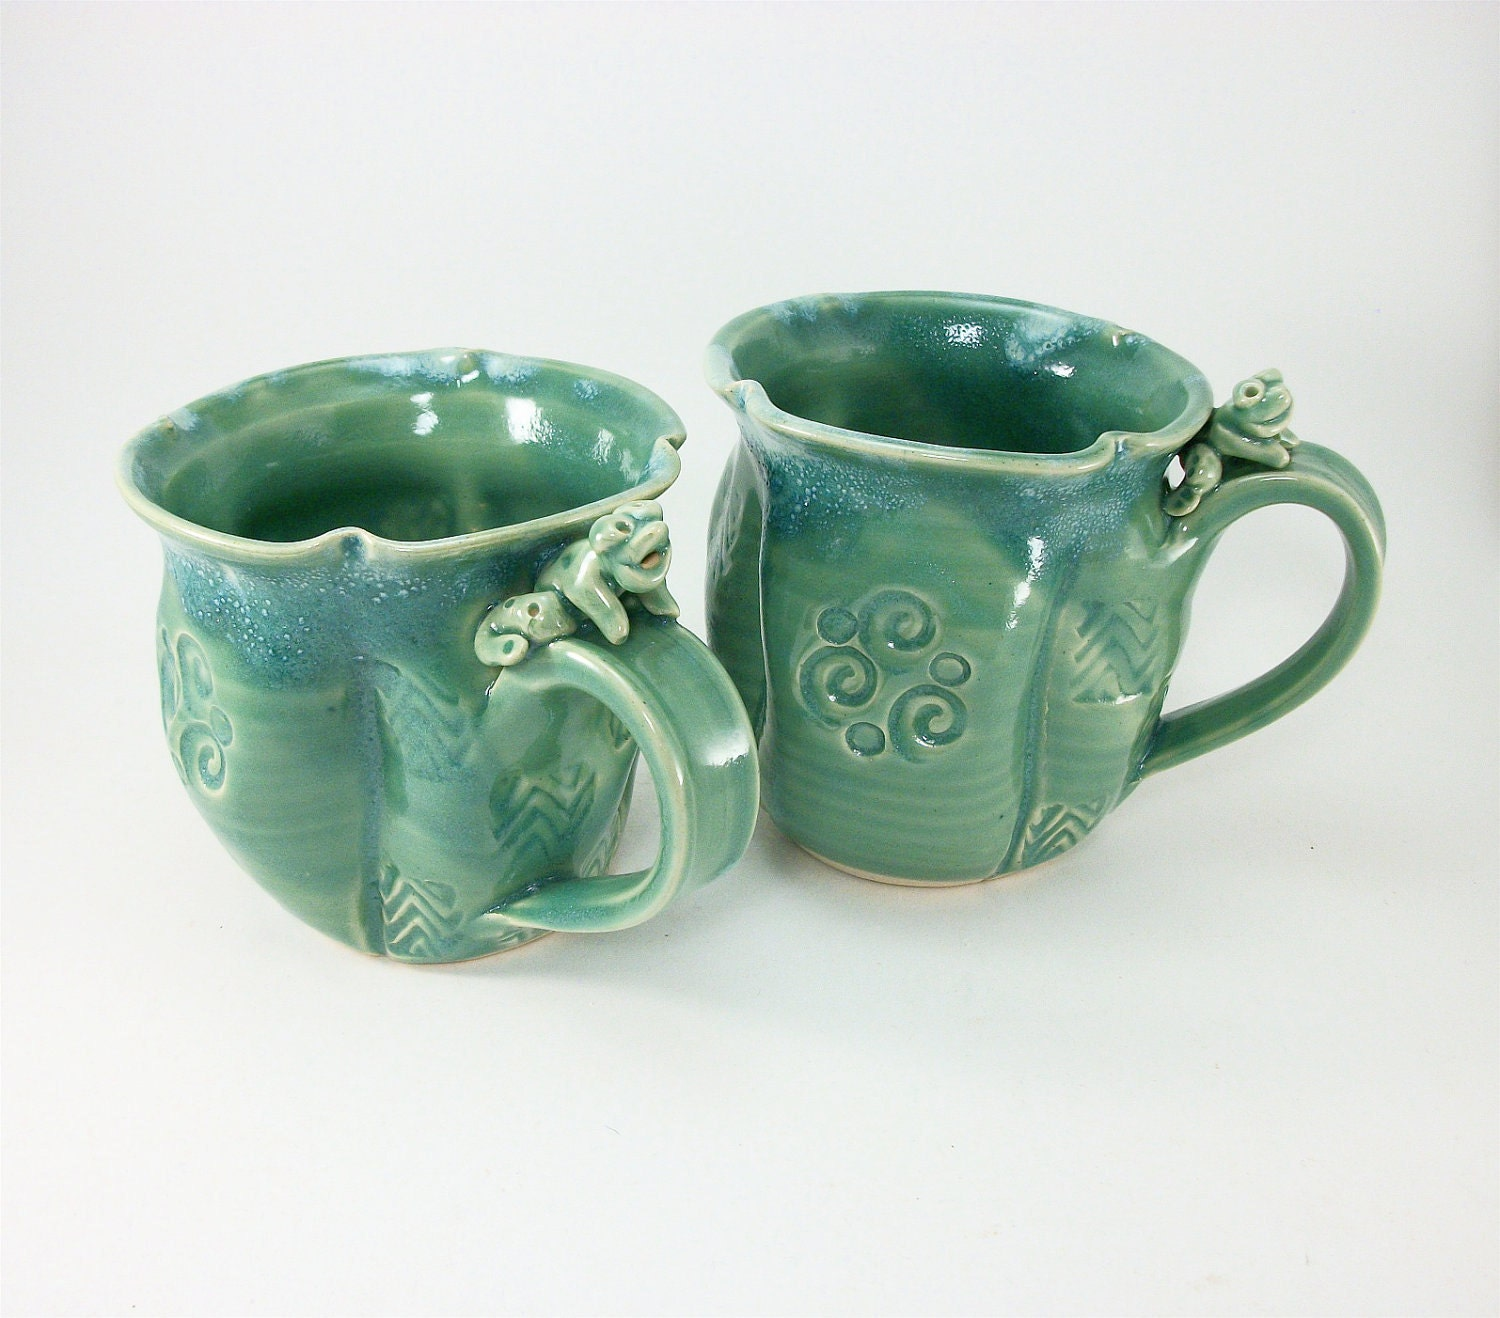 pair of jade colored frog mugs sold together